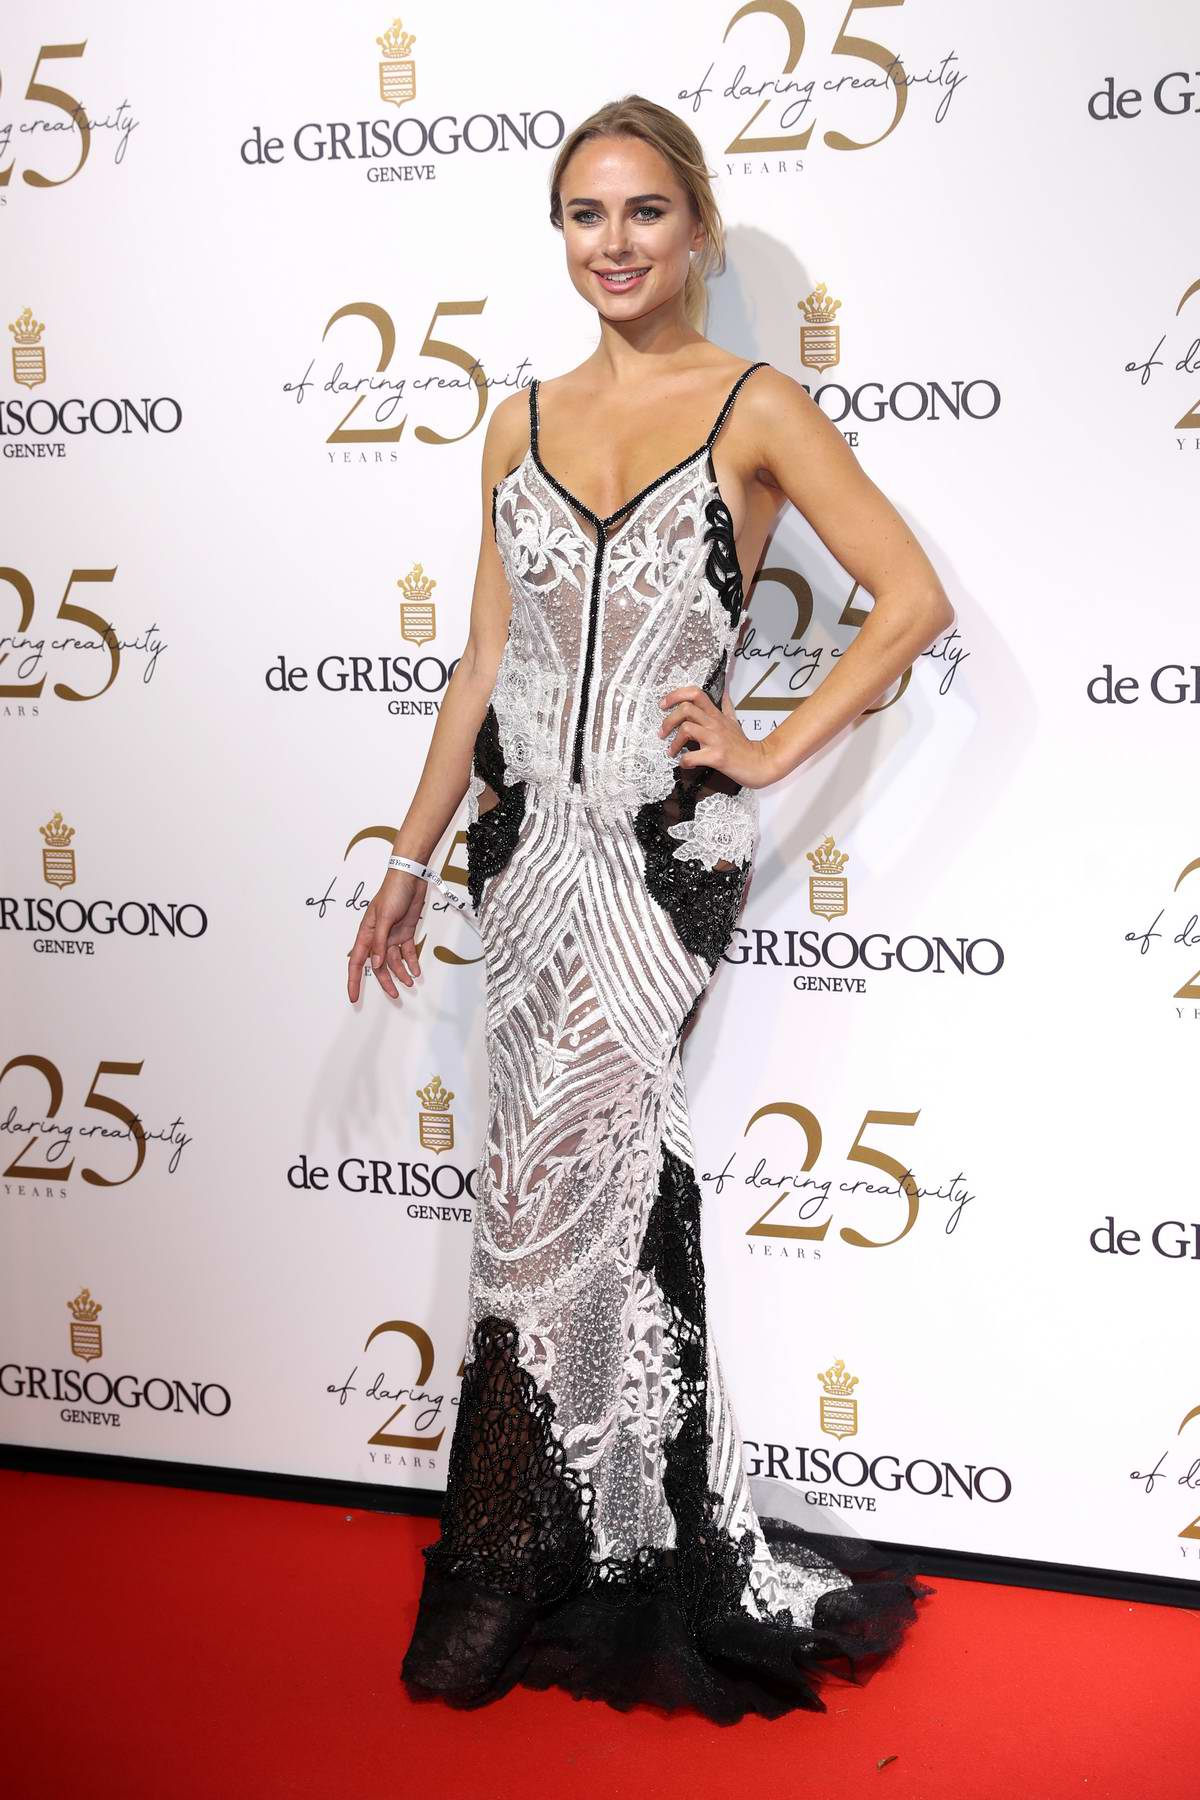 Kimberley Garner attends the De Grisogono party during the 71st annual Cannes Film Festival in Cannes, France